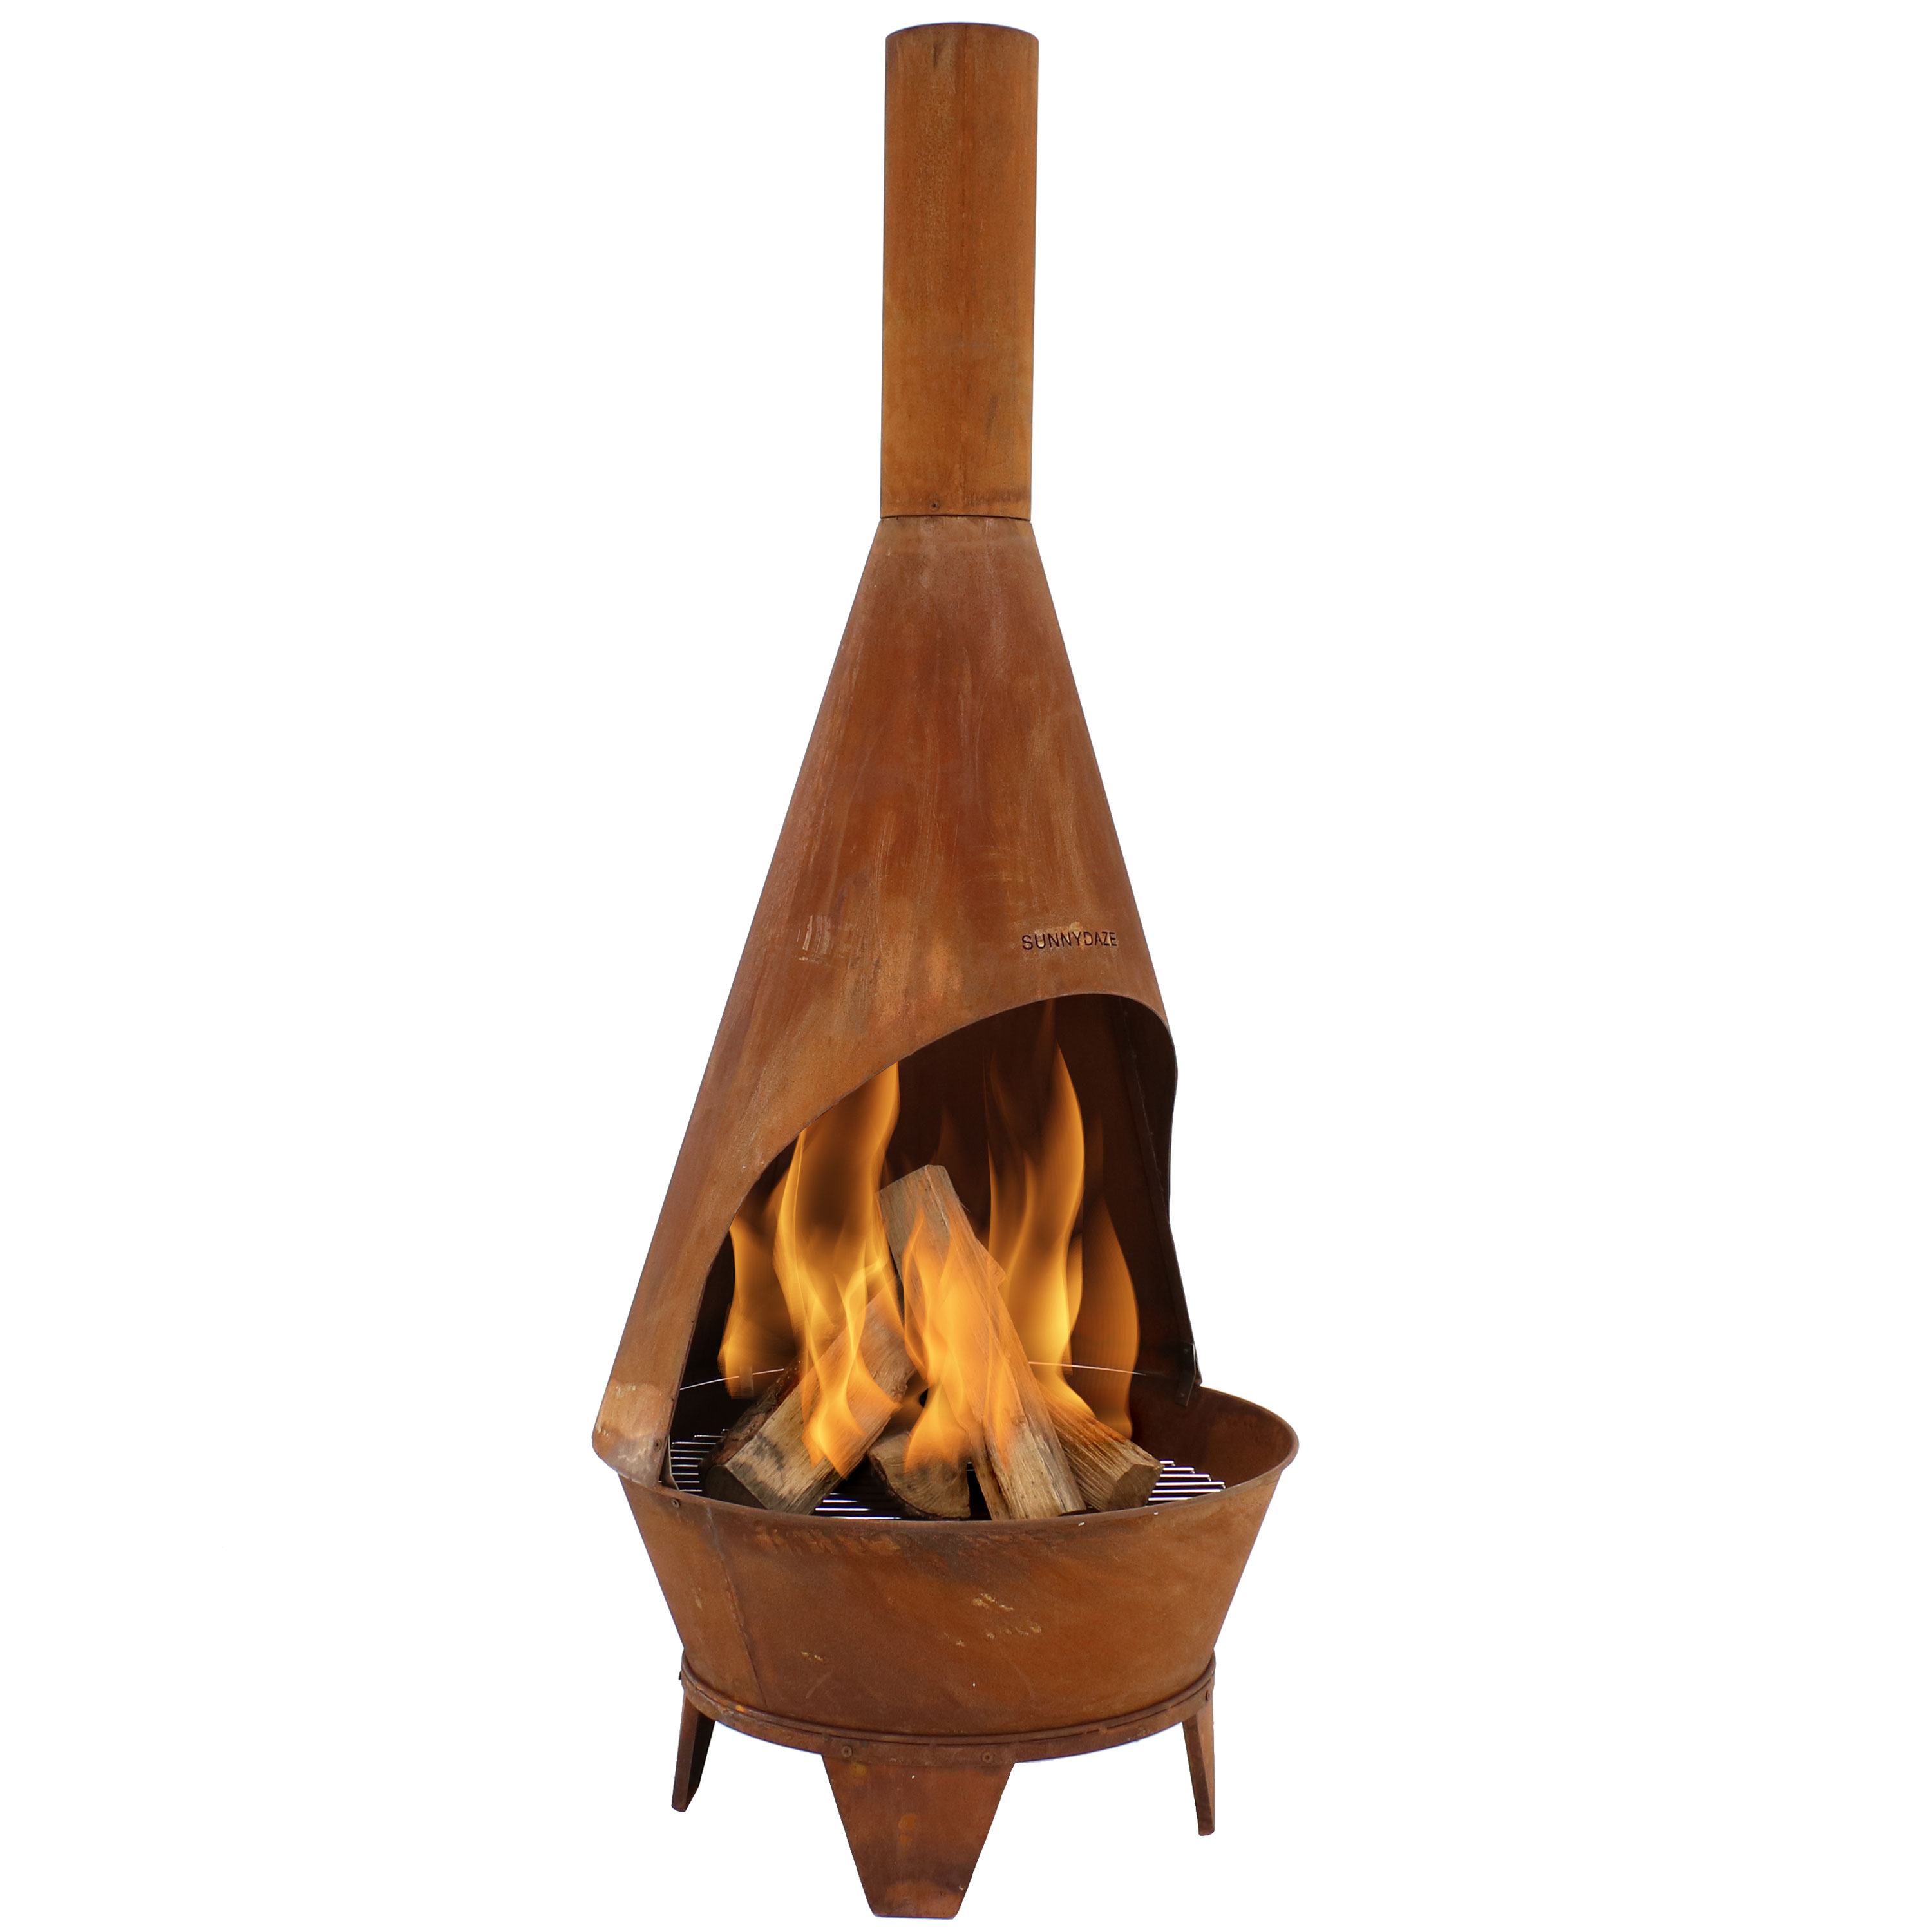 Sunnydaze Chiminea Fire Pit - Large Outdoor Patio Wood-Burning Mexican Style Backyard Fireplace Stove - Oxidized Rustic Cold-Rolled Steel - 6 Foot Tall